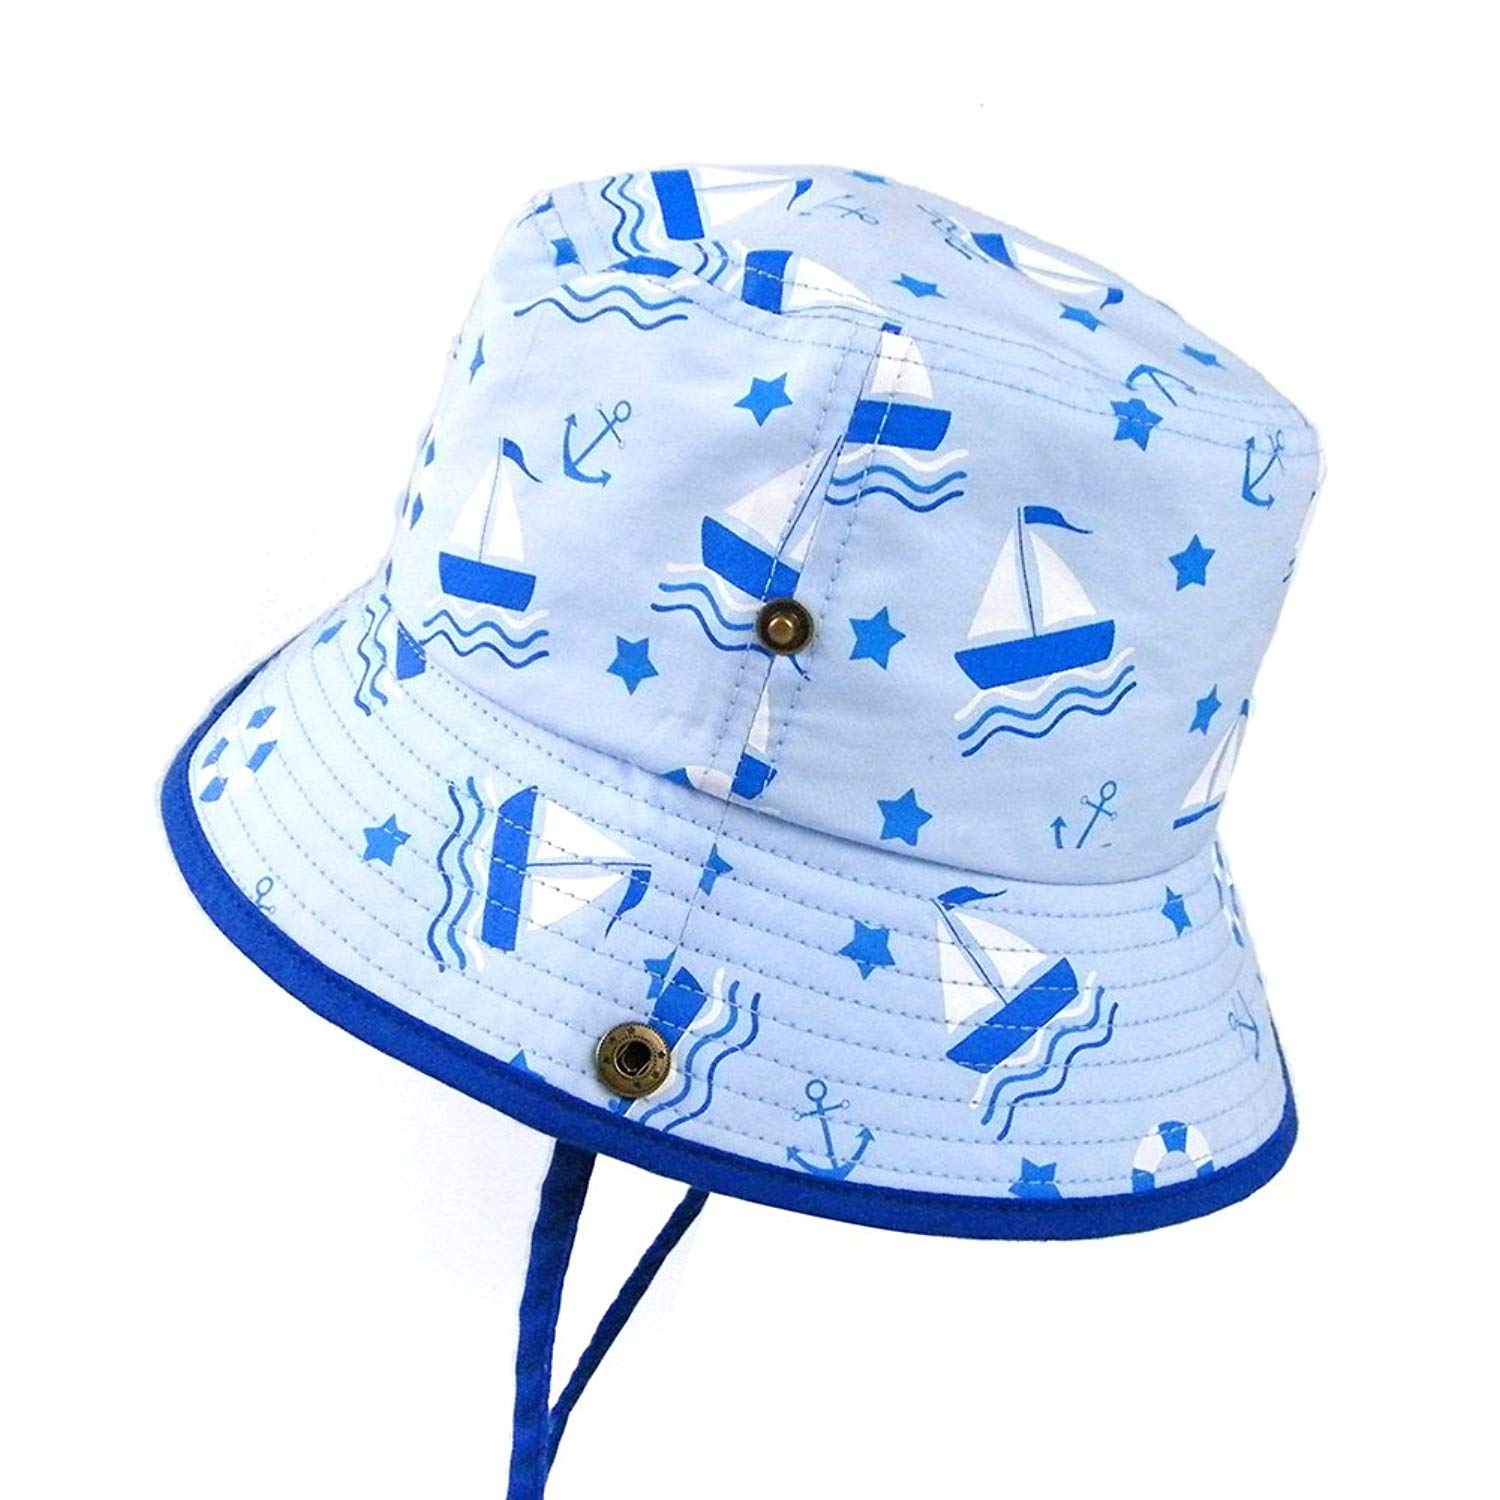 83963f7087e Get Quotations · Baby Girls Bucket Summer Sun Hat Toddler Kids Breathable  Foldable Cotton UV Sun Protection Hats